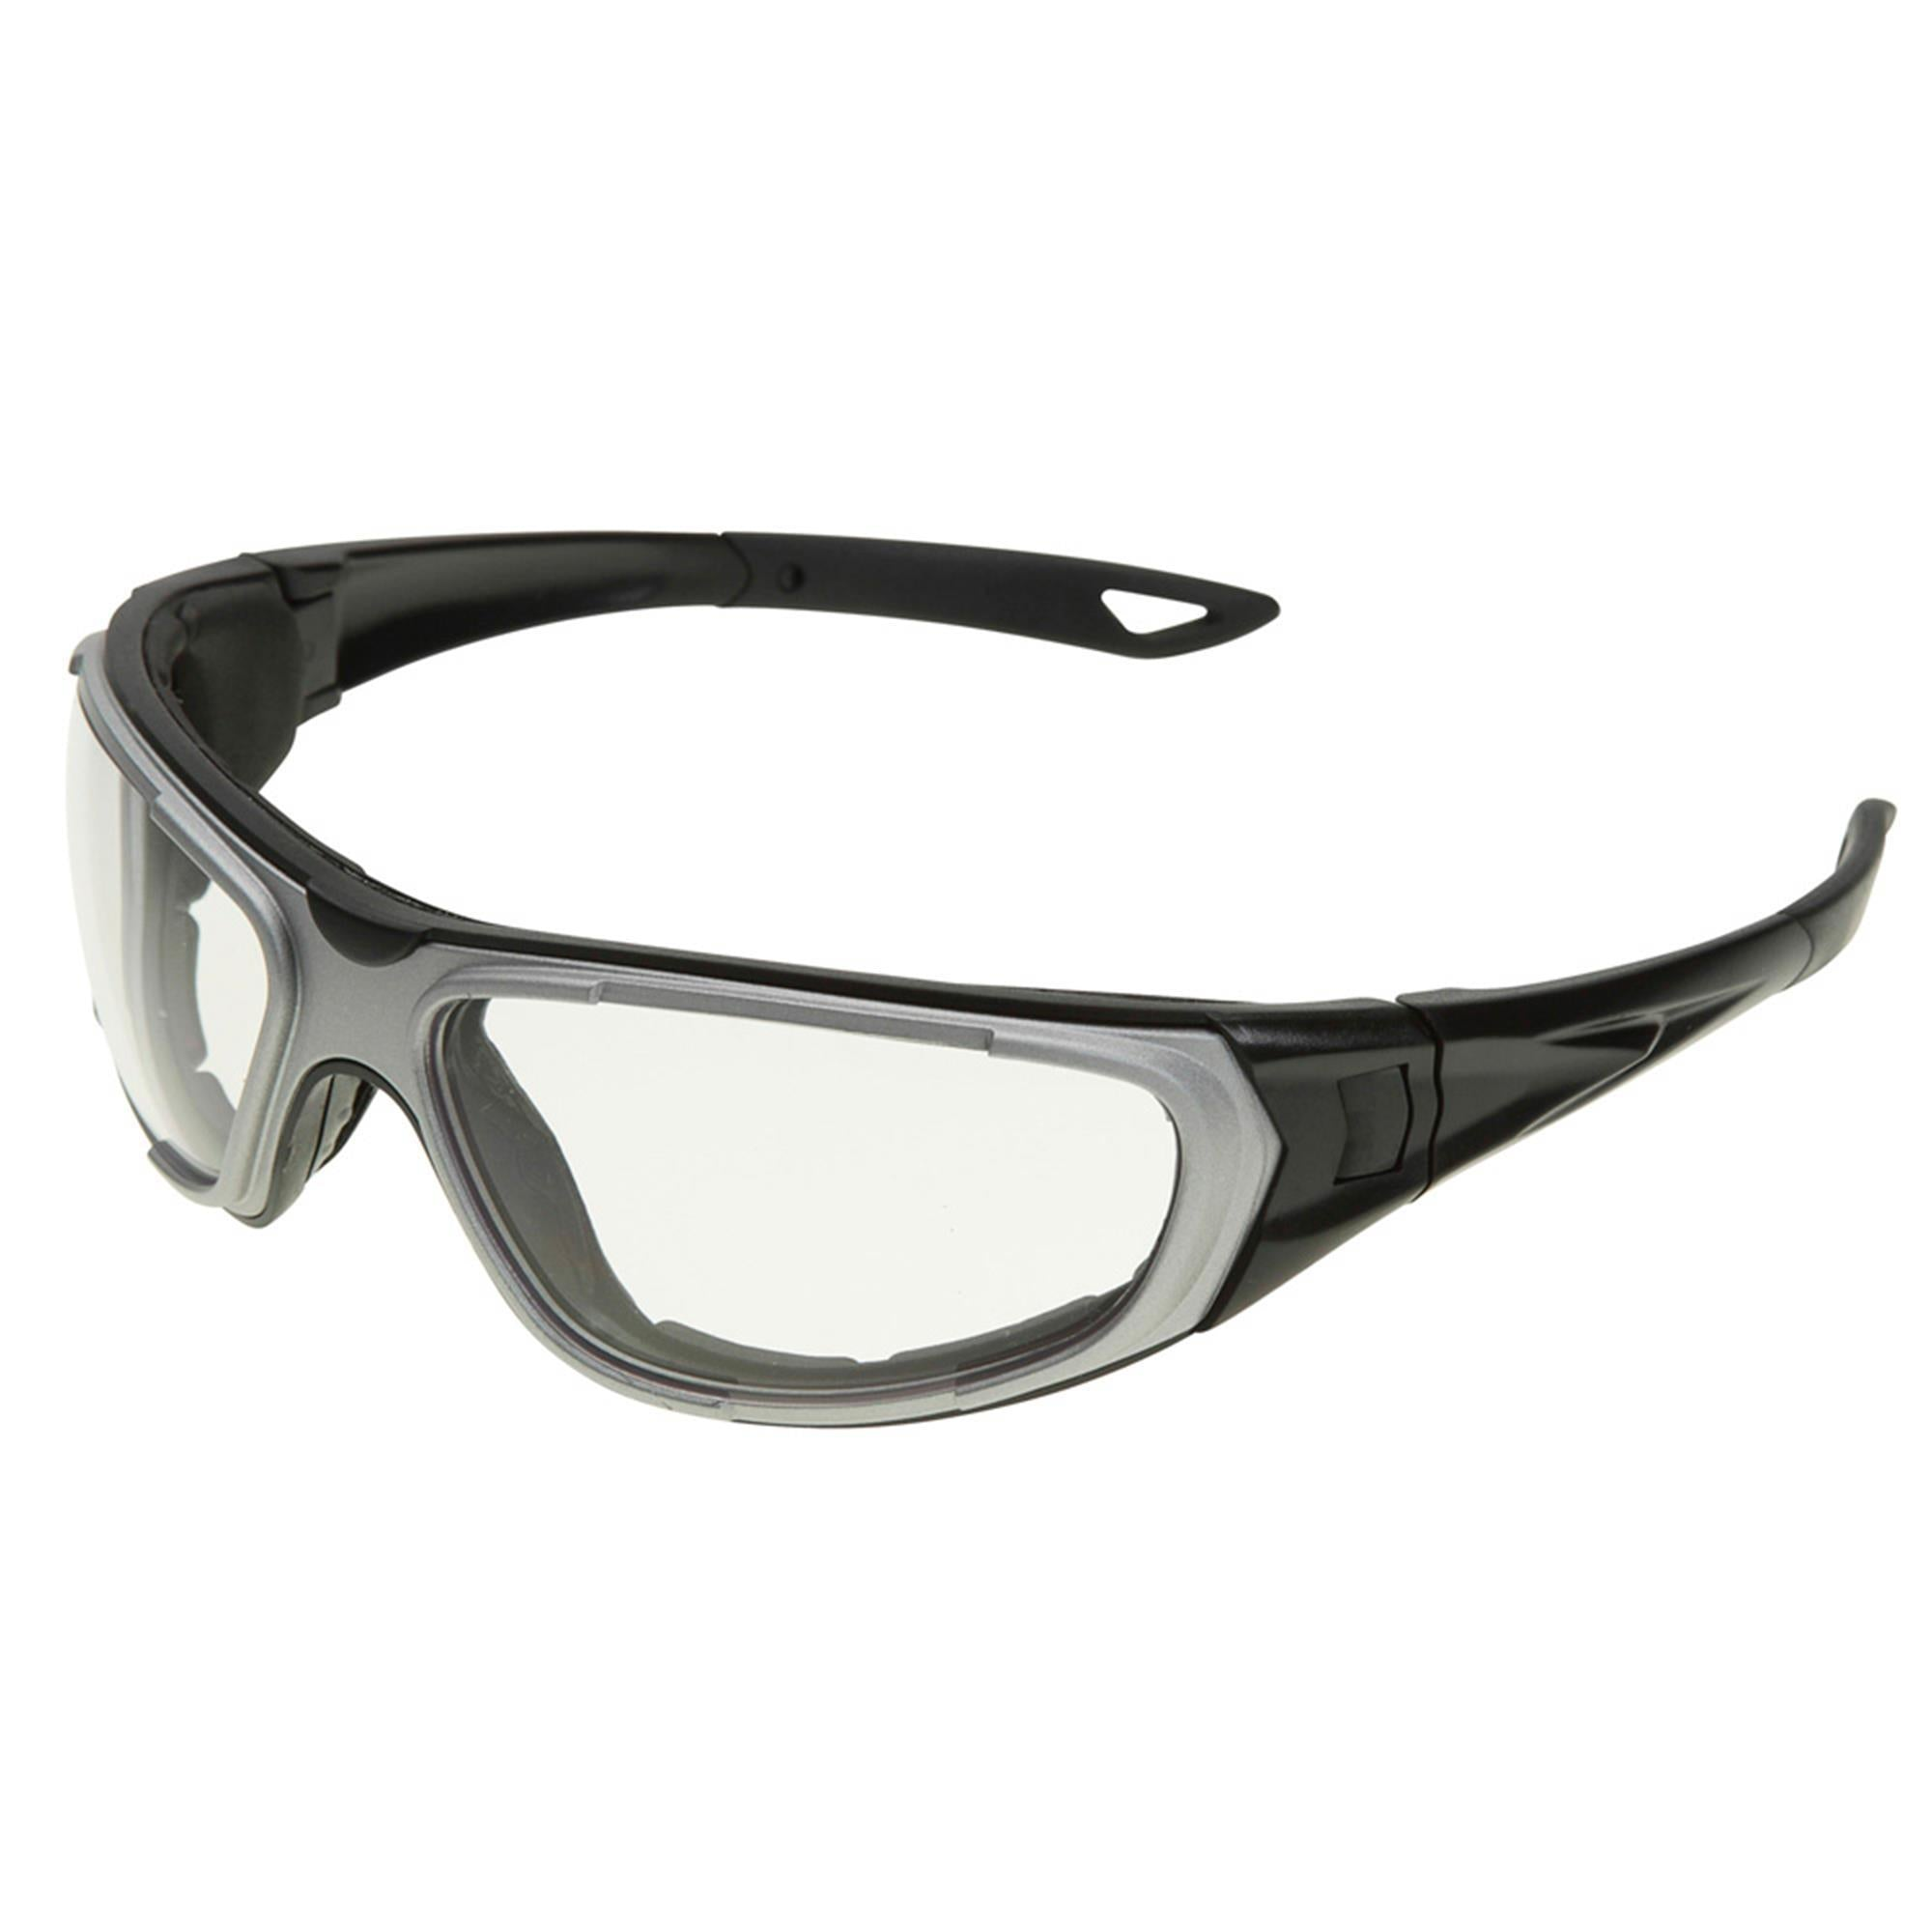 NT2 Safety Glasses with Anti-Fog Lens 1PC